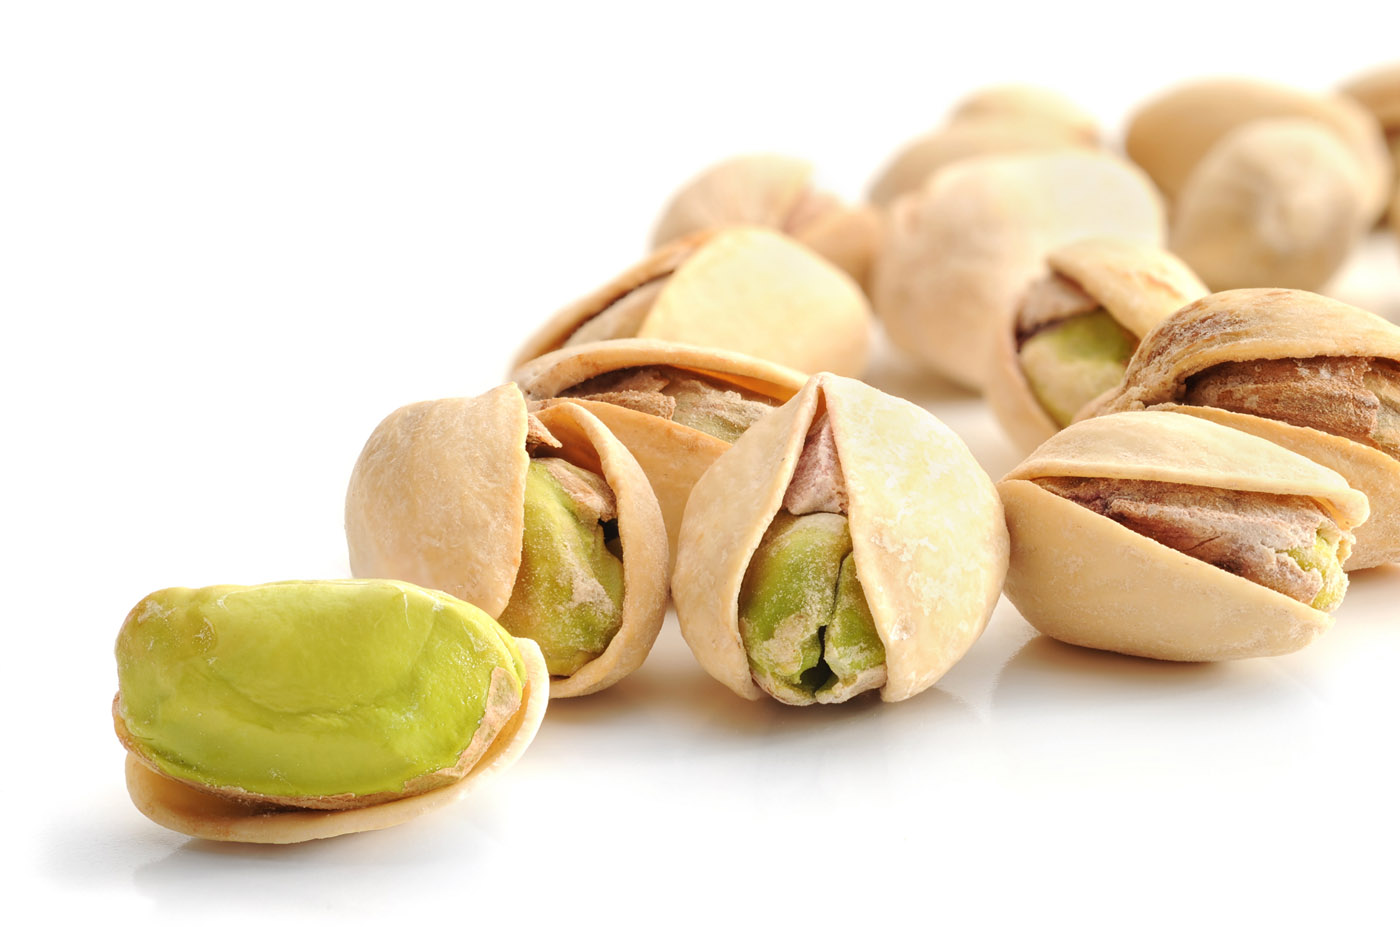 Forum on this topic: How to Roast Pistachios, how-to-roast-pistachios/